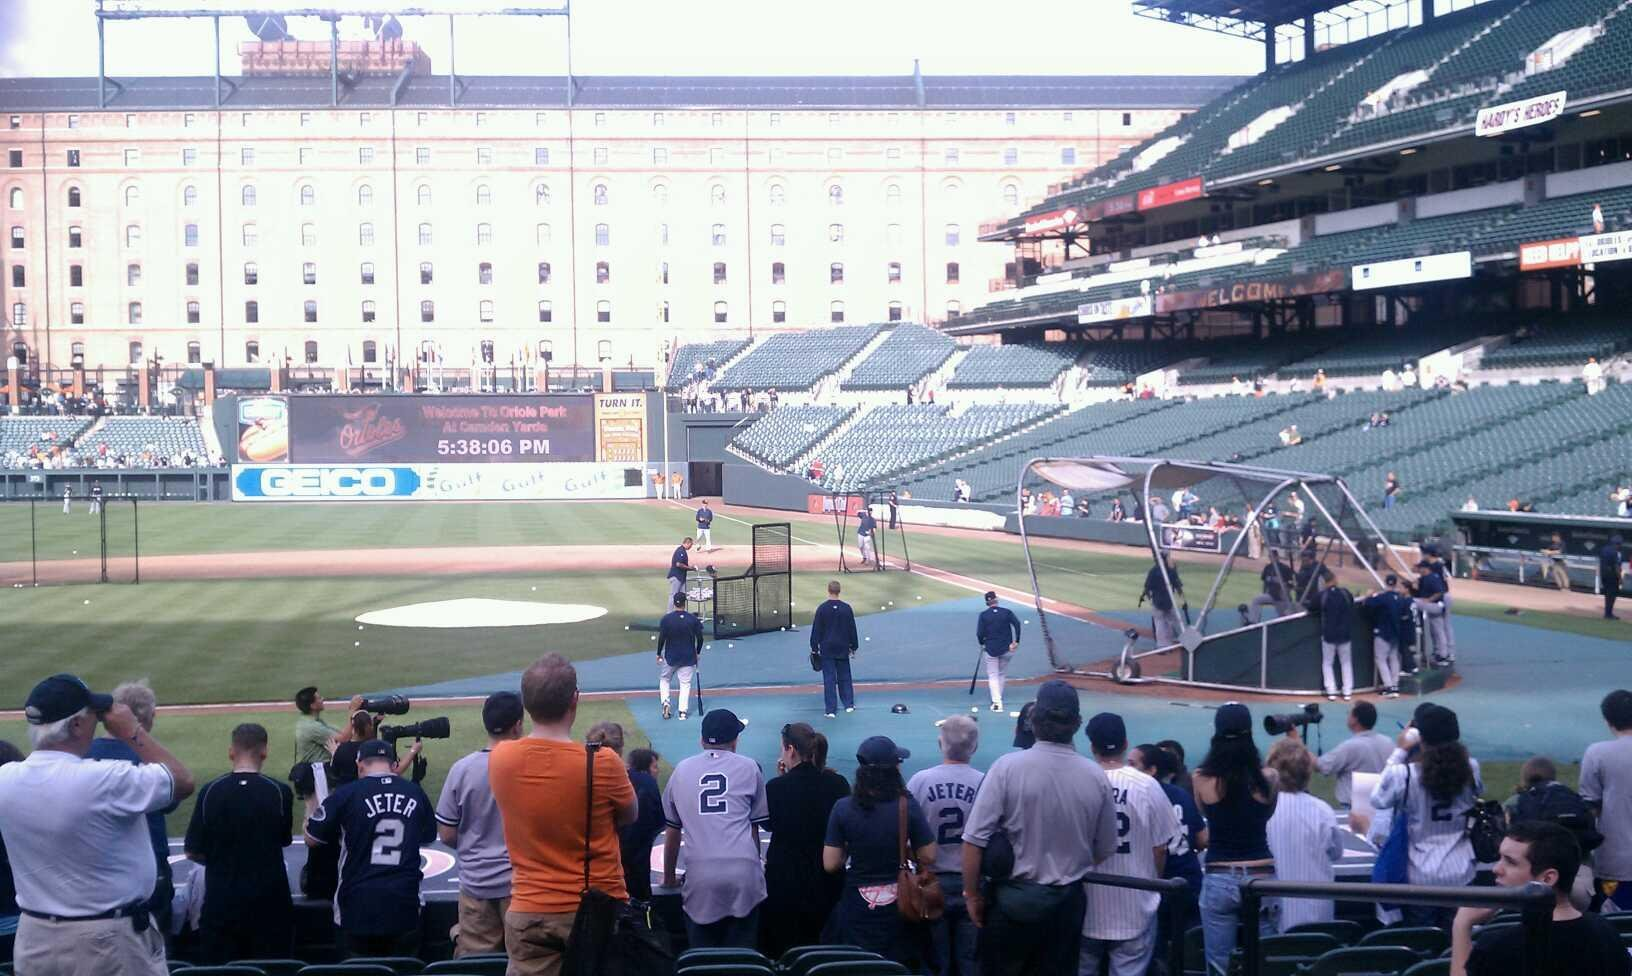 Oriole Park at Camden Yards Section 50 Row 11 Seat 2